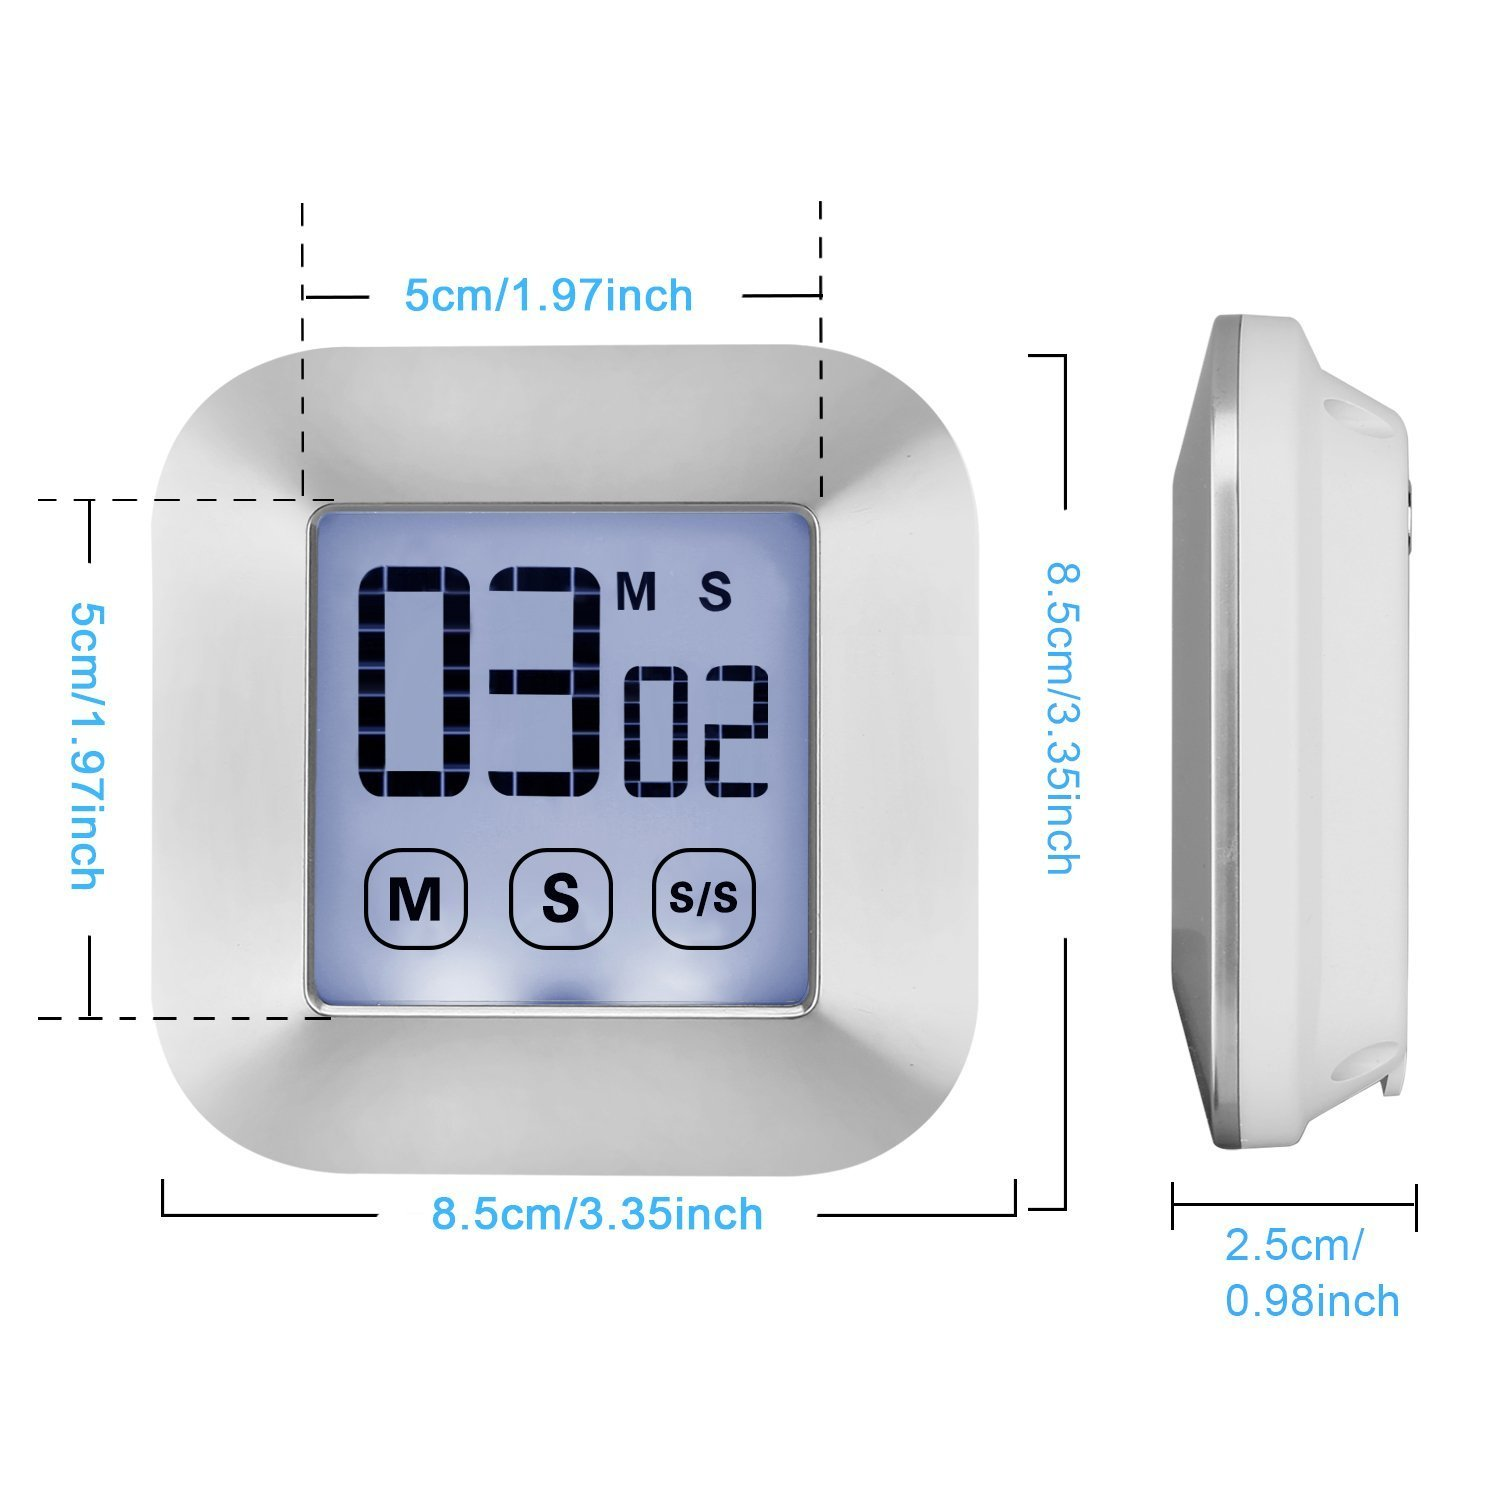 WERCOMIN Digital Kitchen Timer Touchscreen Cooking Timers Clock Backlit LCD Screen Loud Alarm Magnetic Backing Stand for Game, Classroom, Sports, Exercise by WERCOMIN (Image #8)